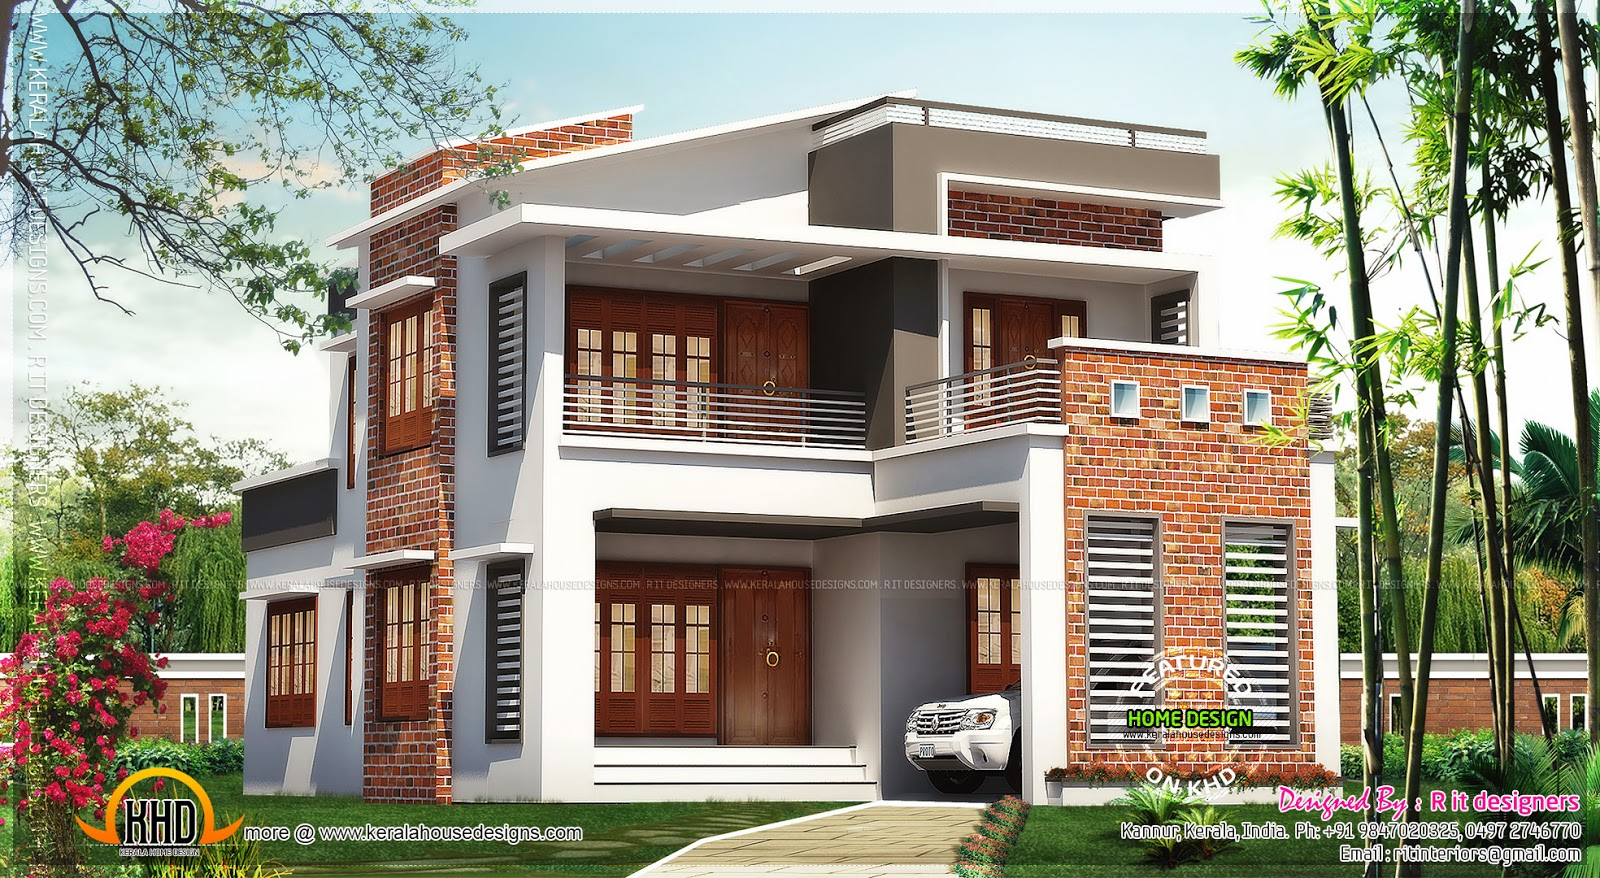 Brick mix house exterior design kerala home design and for Home front design photo